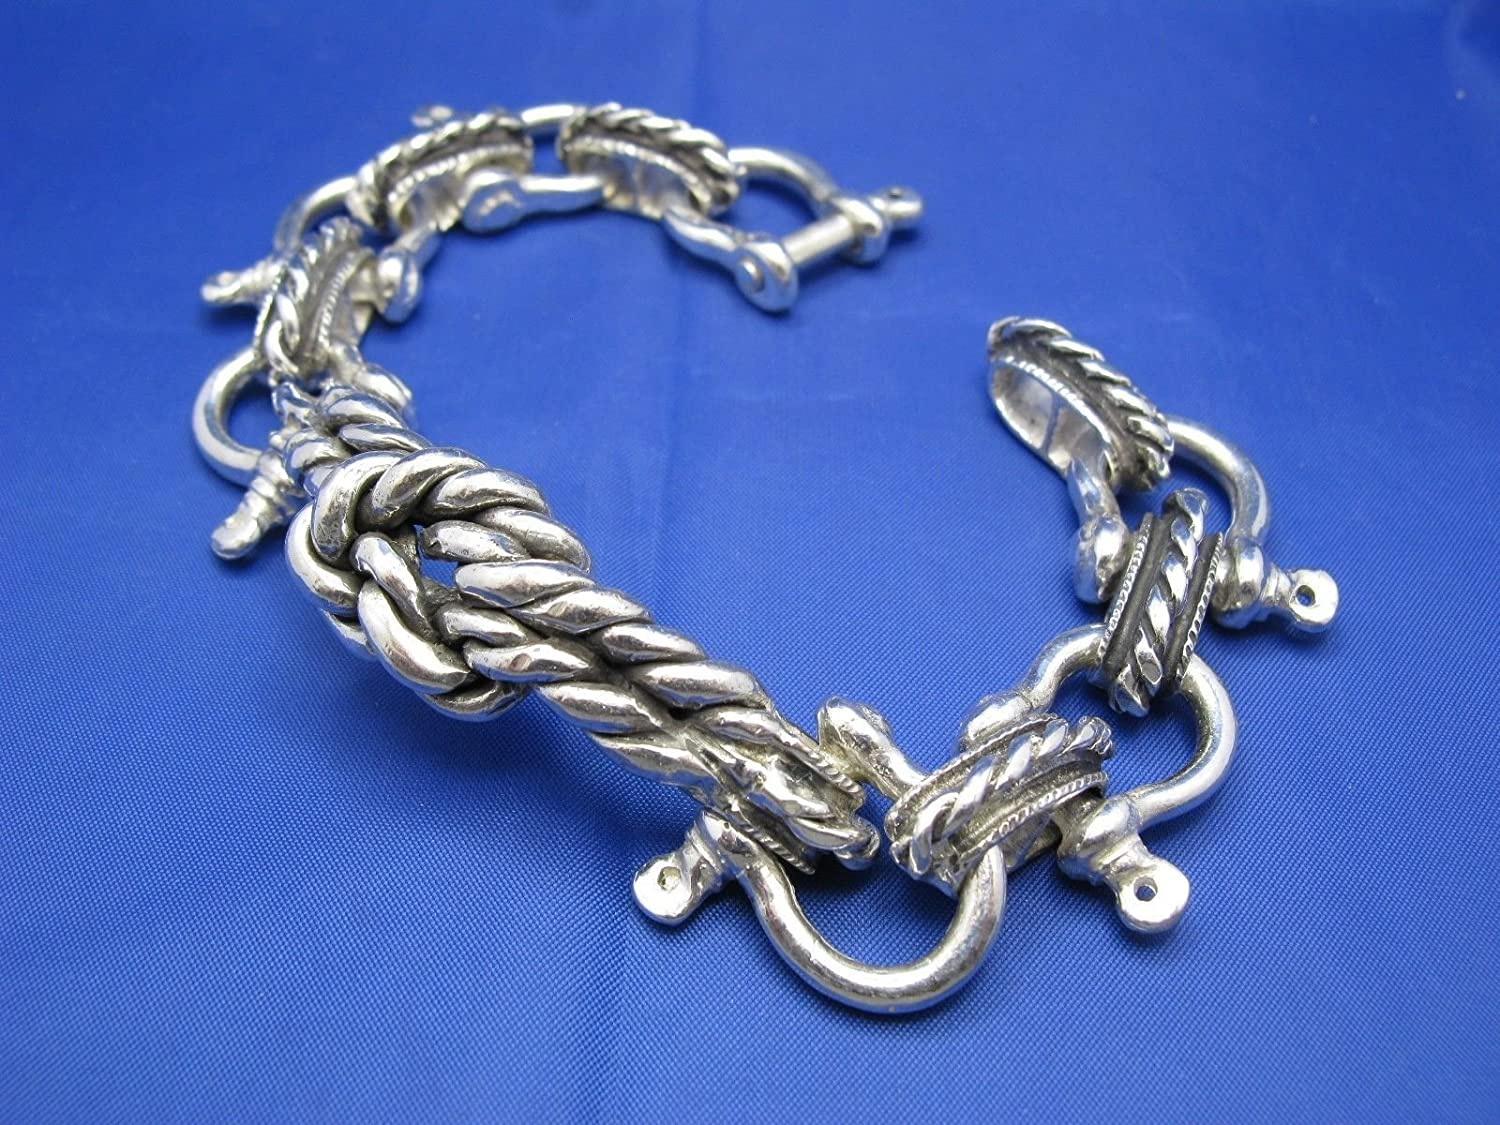 Deluxe Adult Costumes - Pirate men's handmade sterling silver wide nautical shackle bracelet with sailor's knot center.